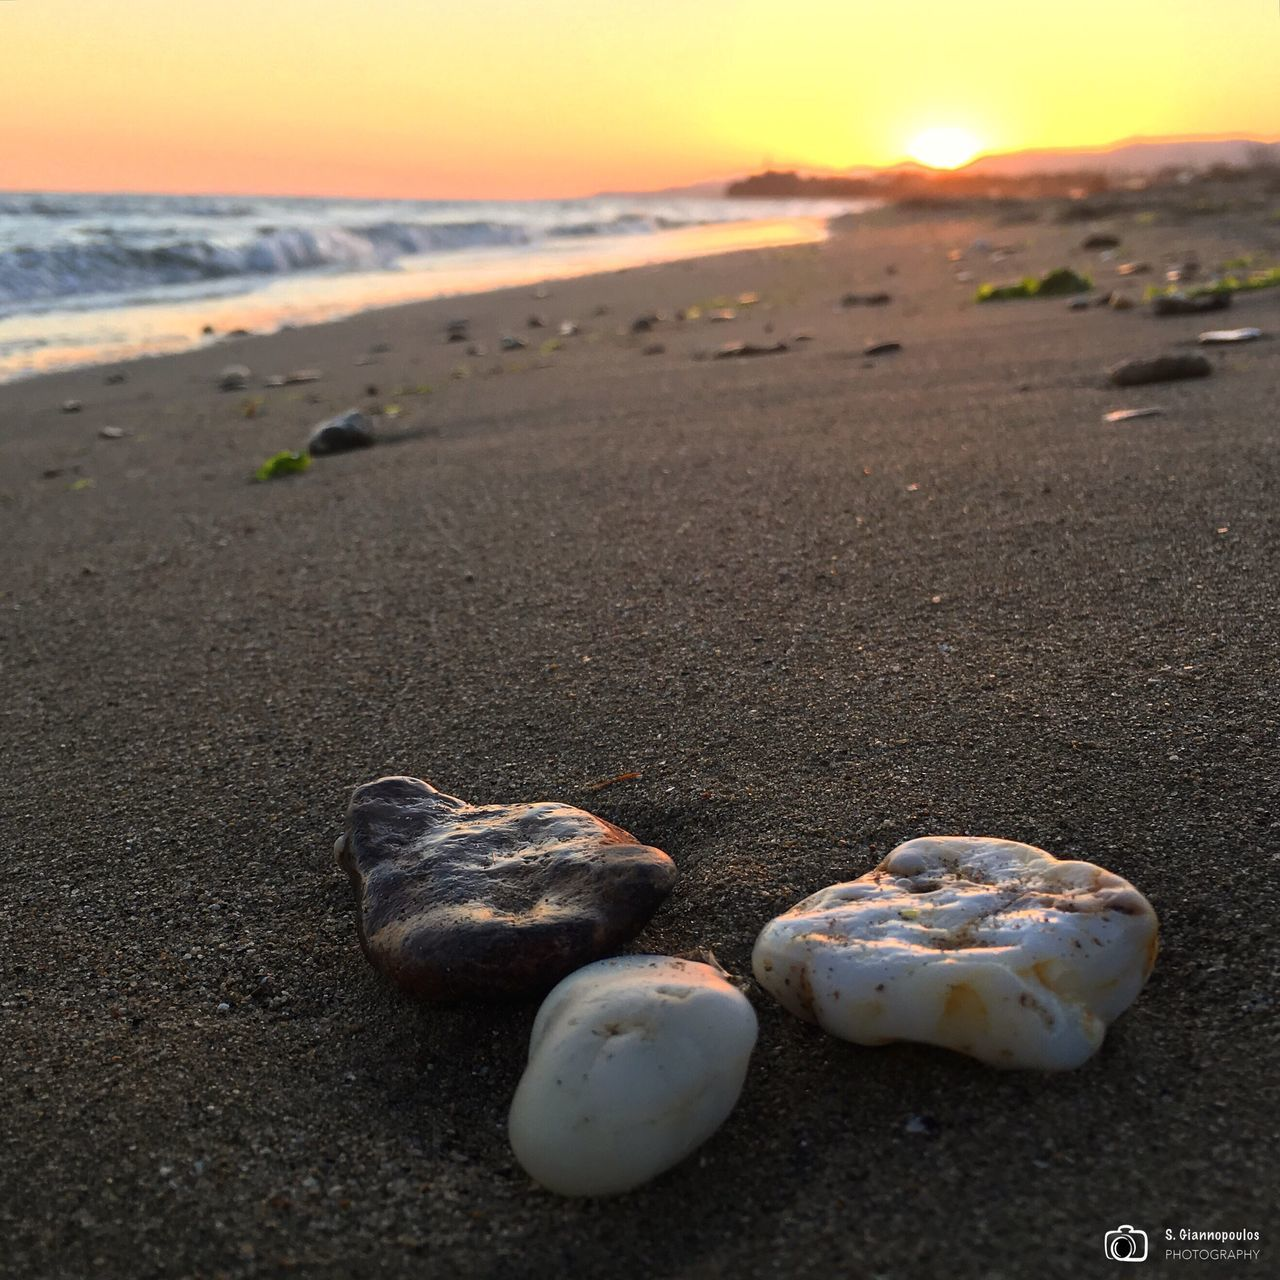 beach, shore, sand, sea, sunset, nature, beauty in nature, outdoors, no people, horizon over water, tranquility, water, scenics, day, close-up, sky, animal themes, pebble beach